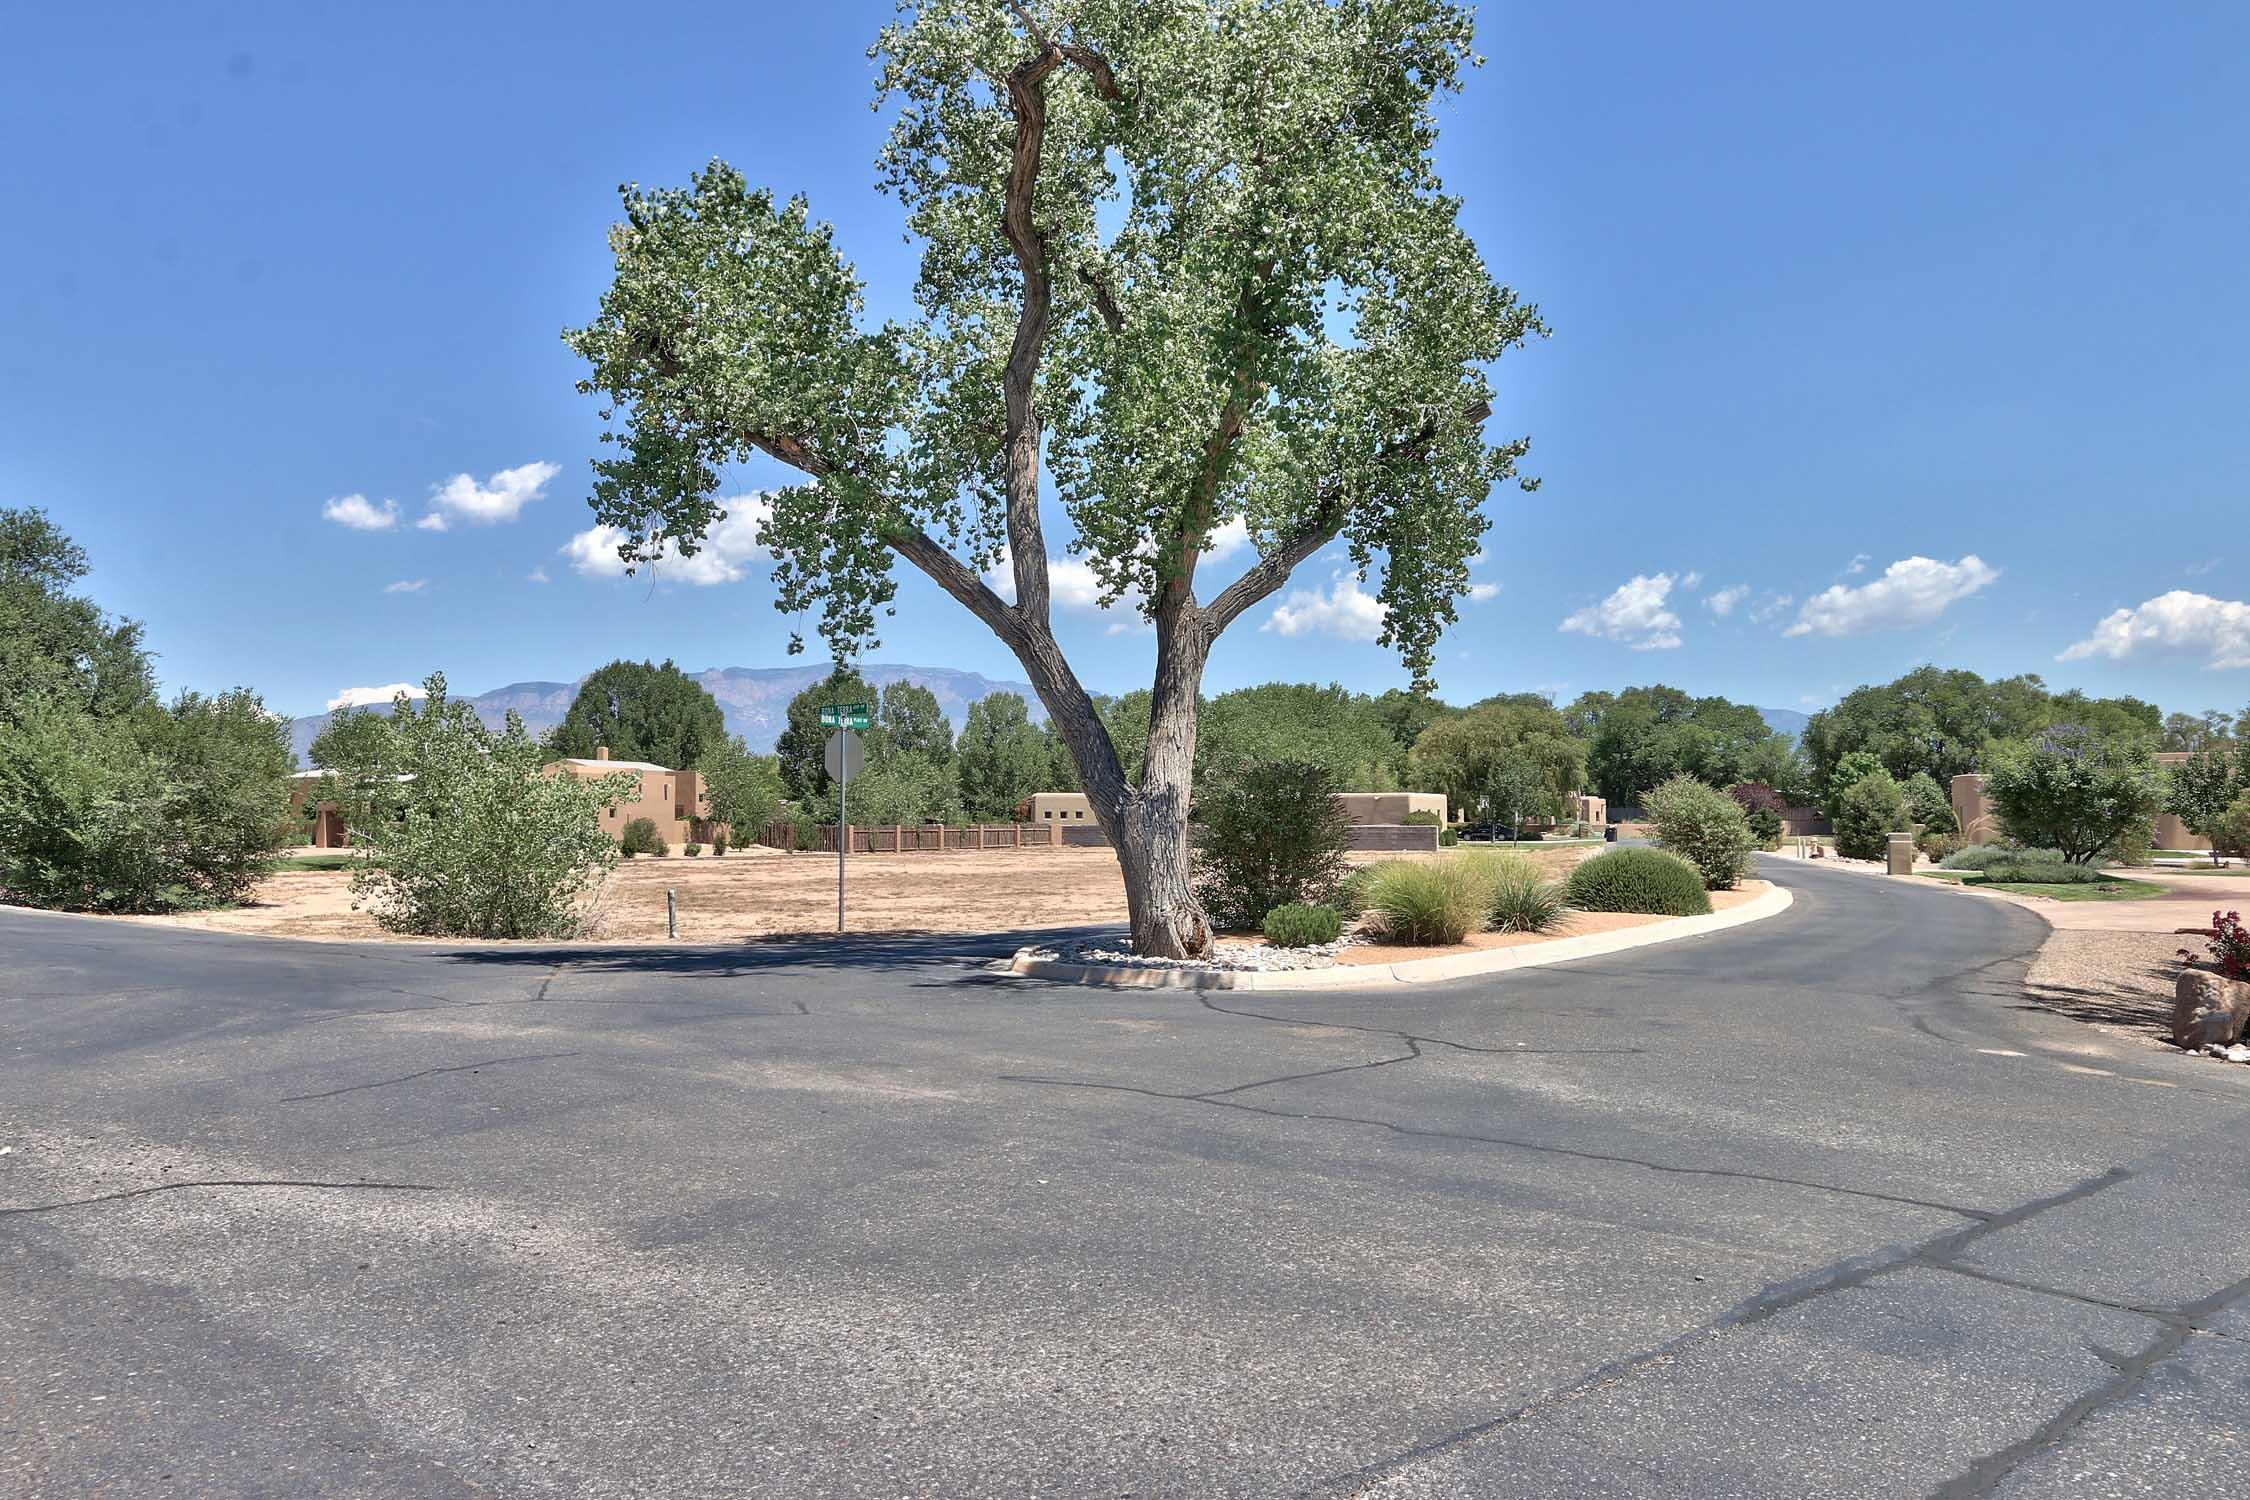 0 BONA TERRA Place NW Property Photo - Albuquerque, NM real estate listing